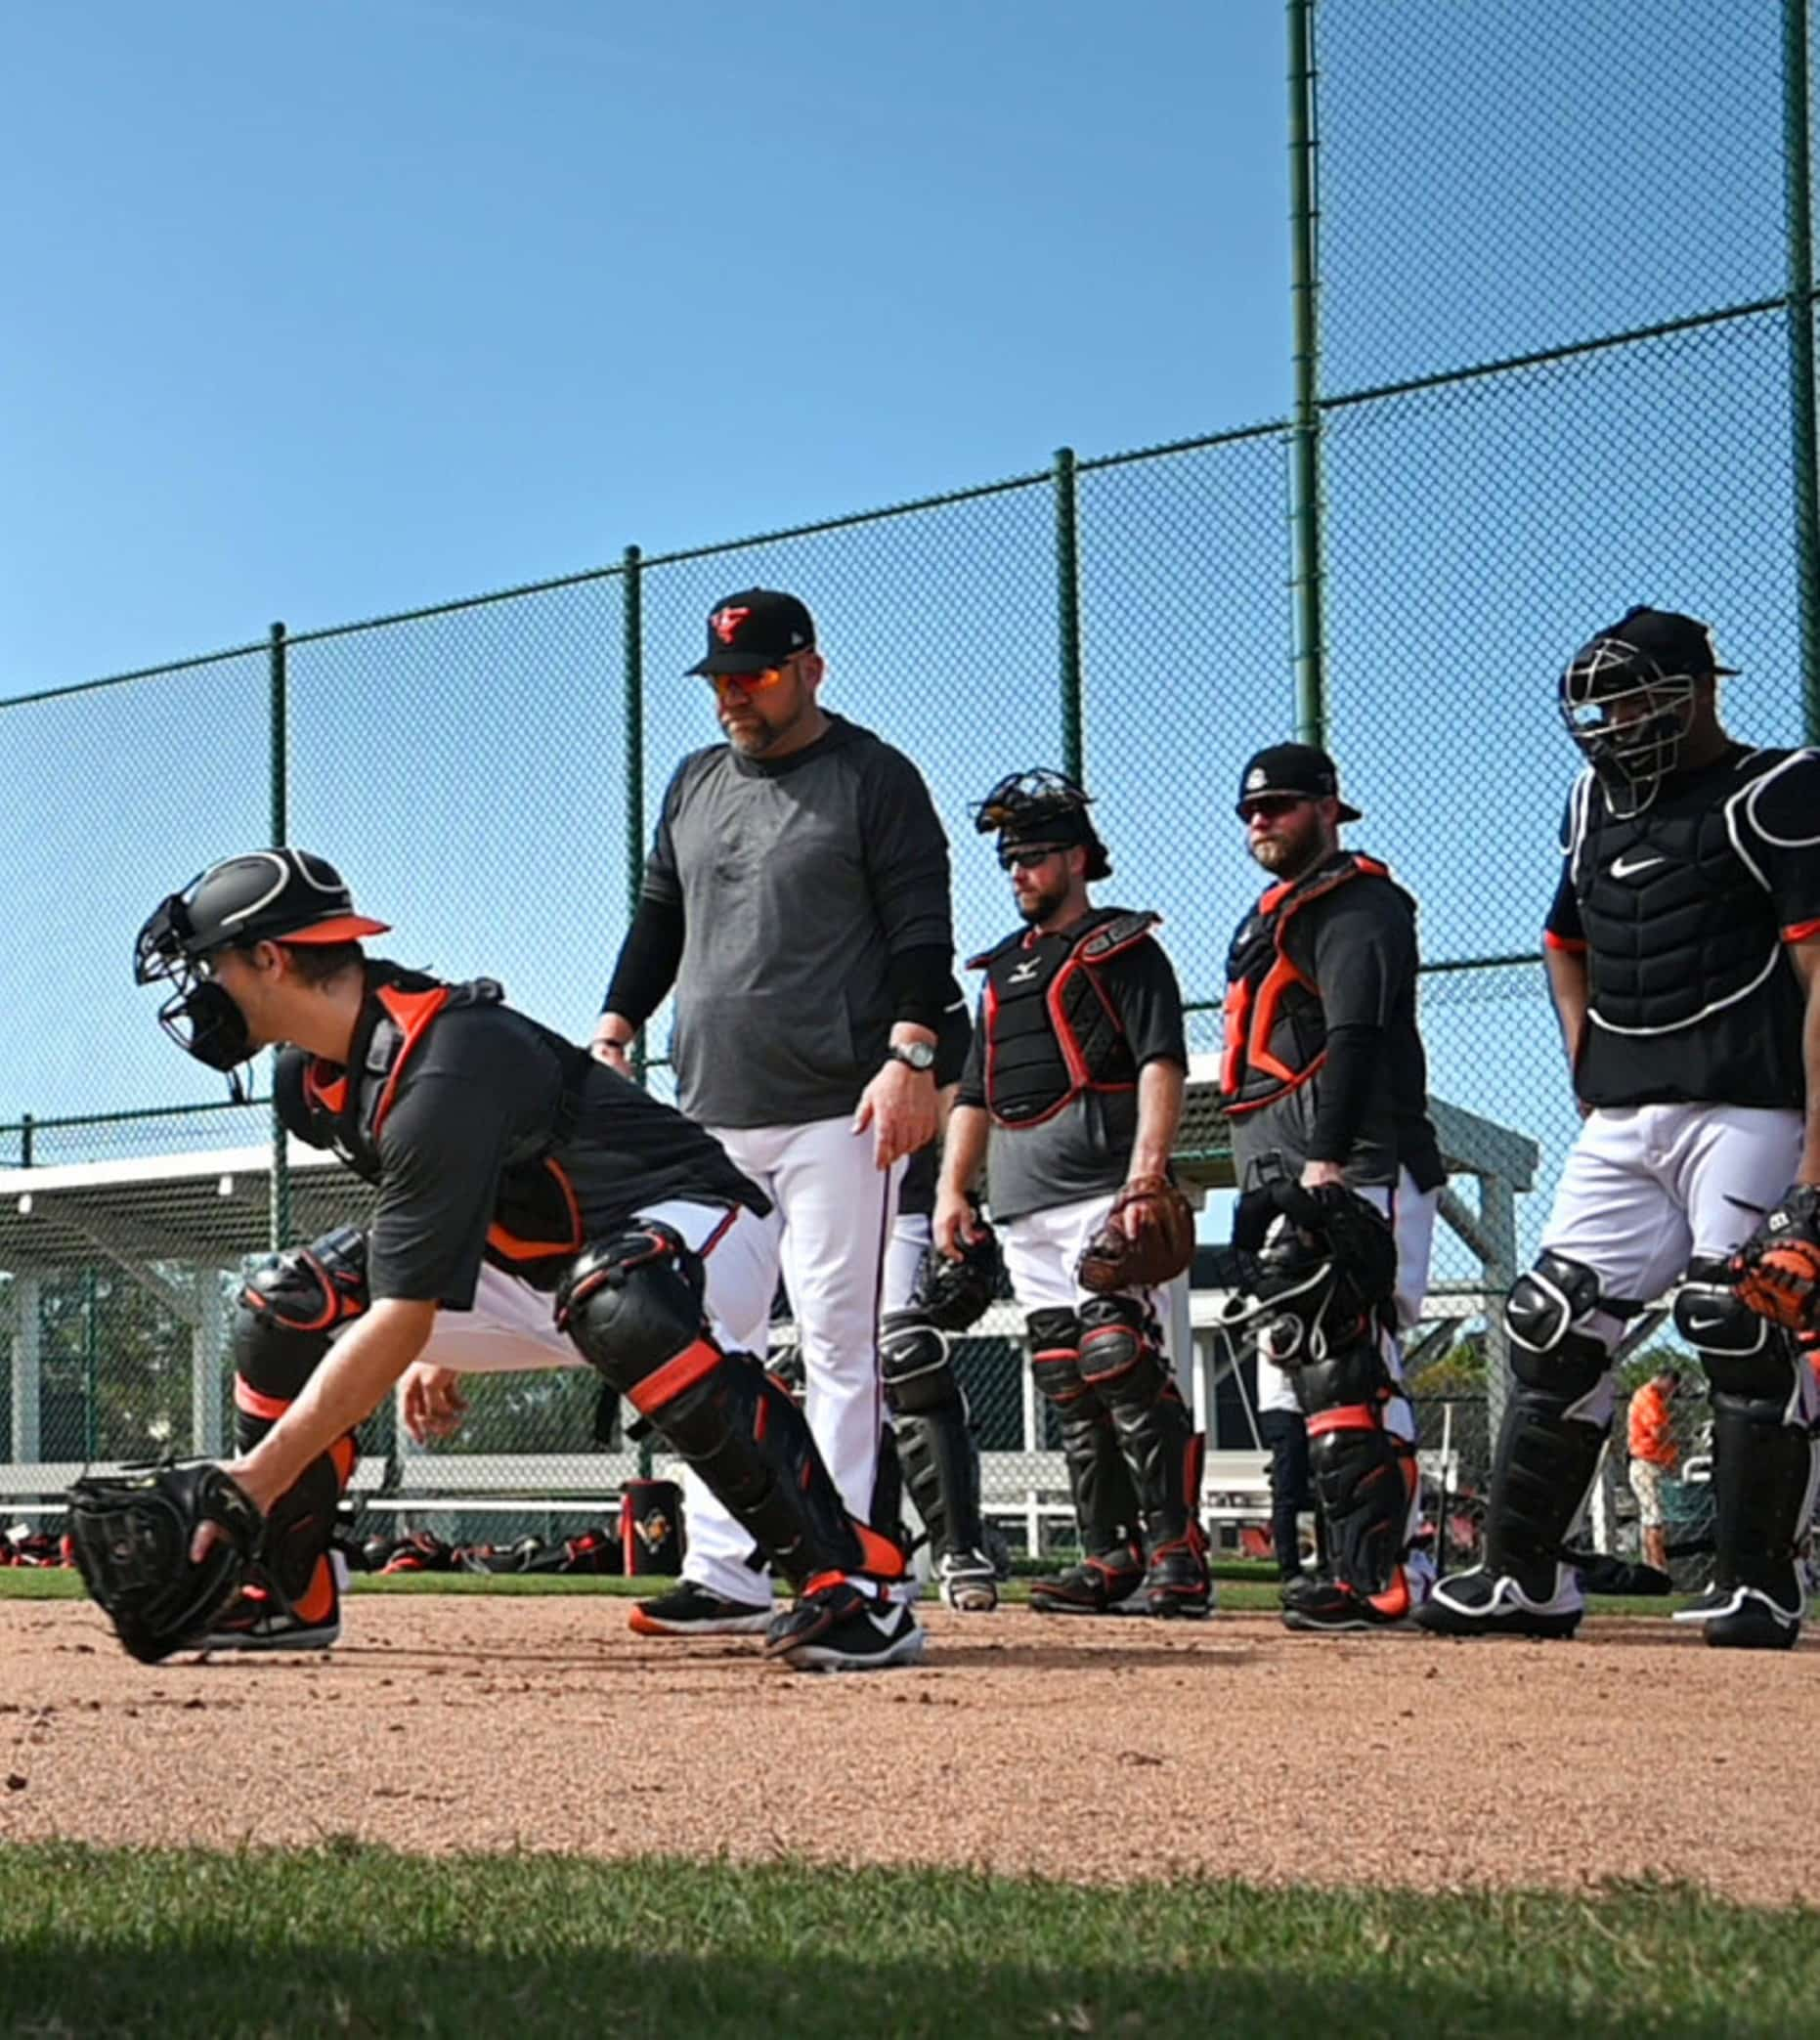 Baltimore Orioles catchers warming up during 2021 spring training